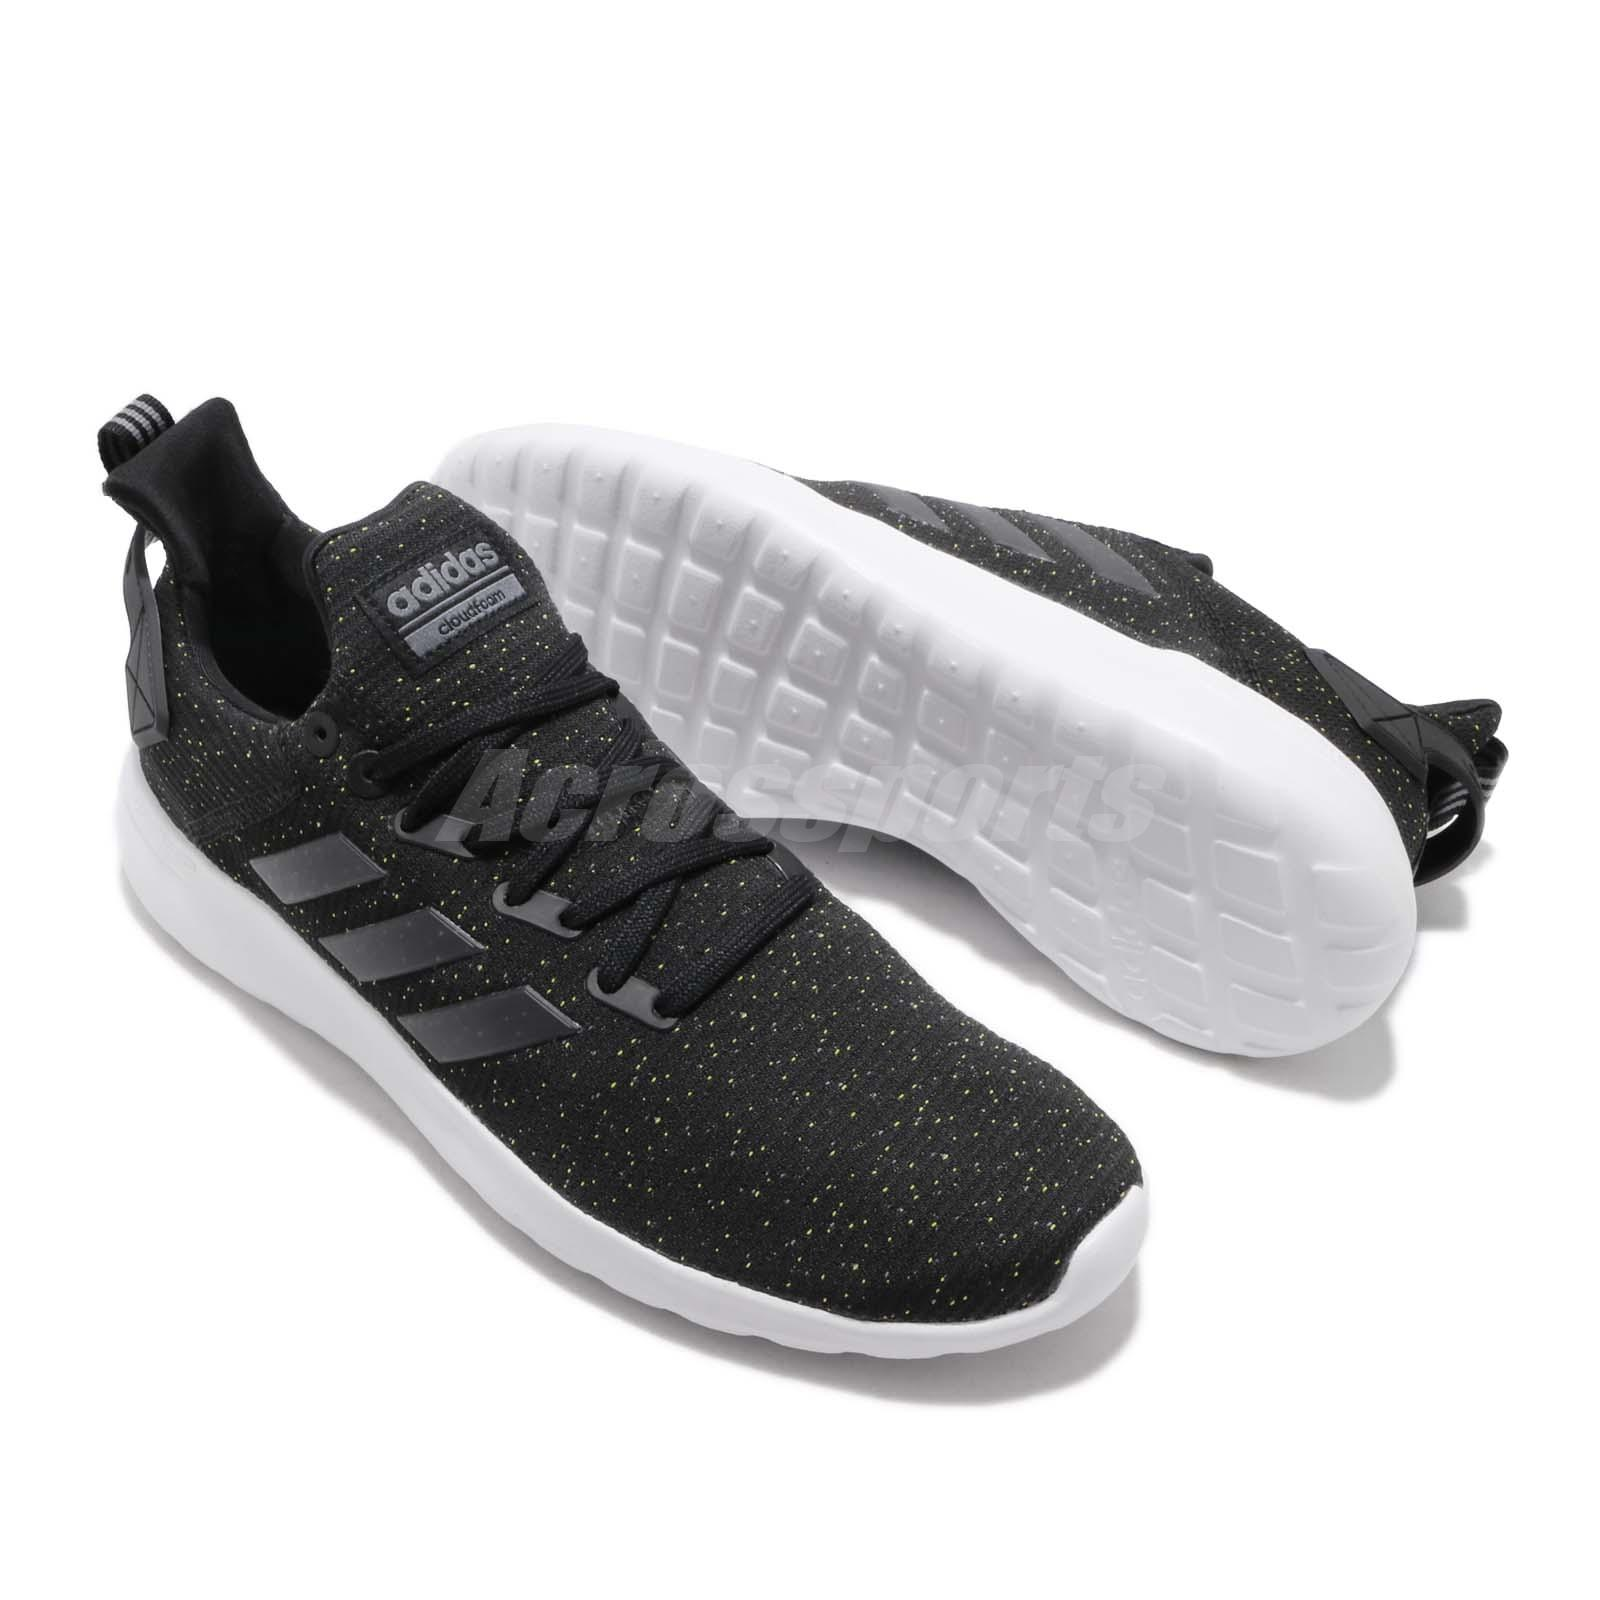 adidas Lite Racer BYD Black Onix White Men Running Casual Shoes ... f54526250